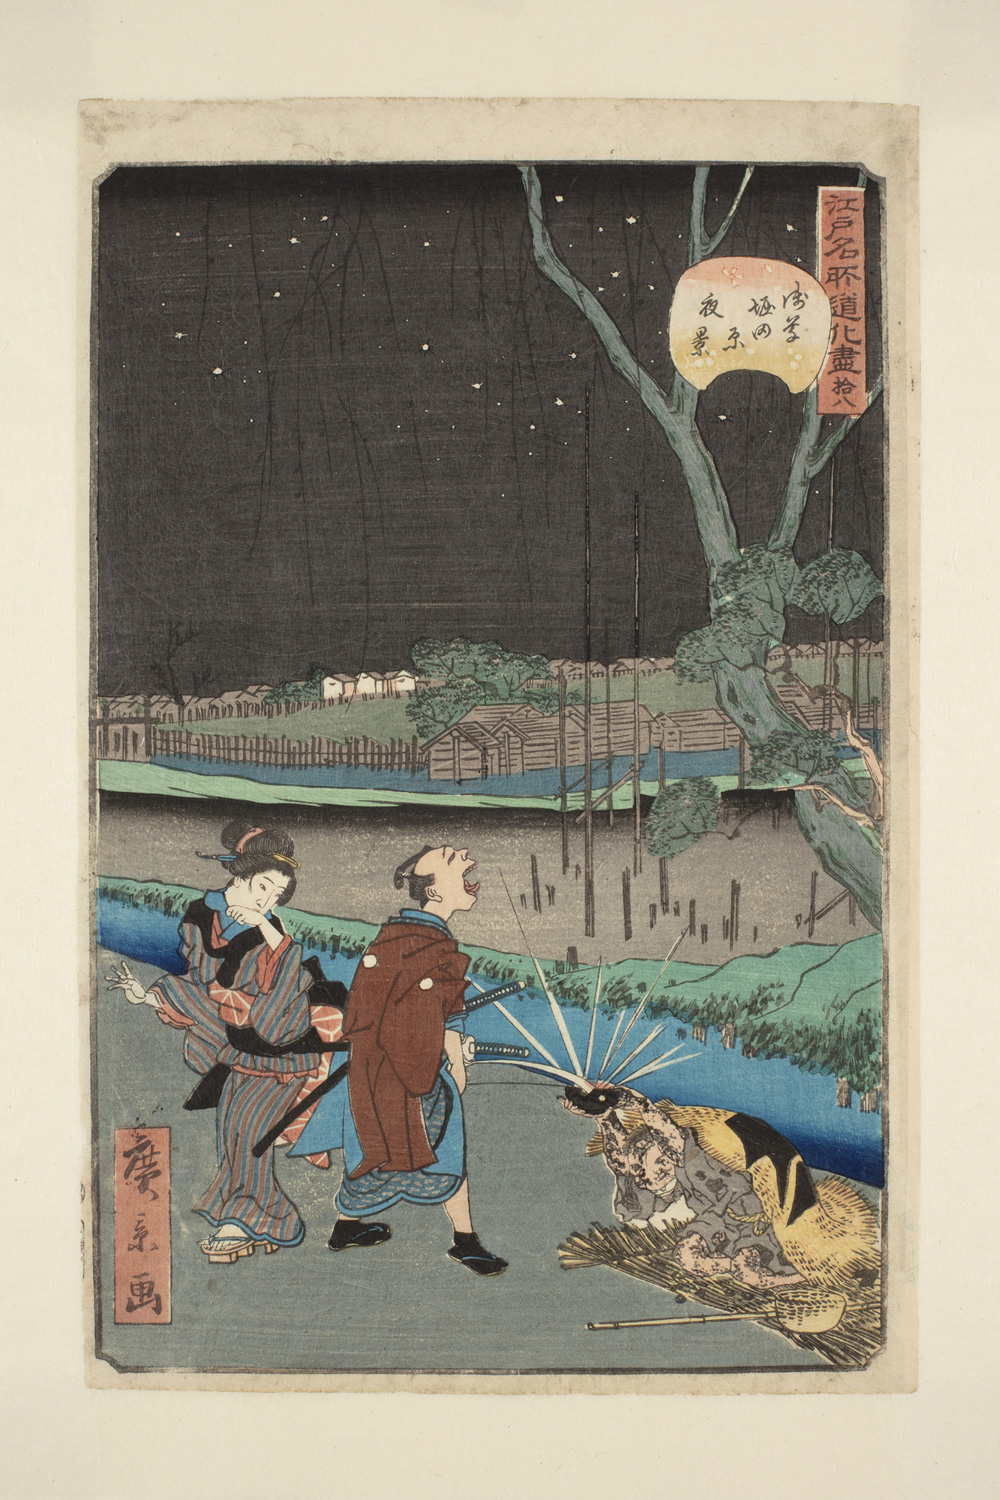 Japanese print. A man and a woman standing by a stream dressed in traditional clothes. The man is shouting at a lantern caught in the tree. There are buildings and stars in the night sky in the background.